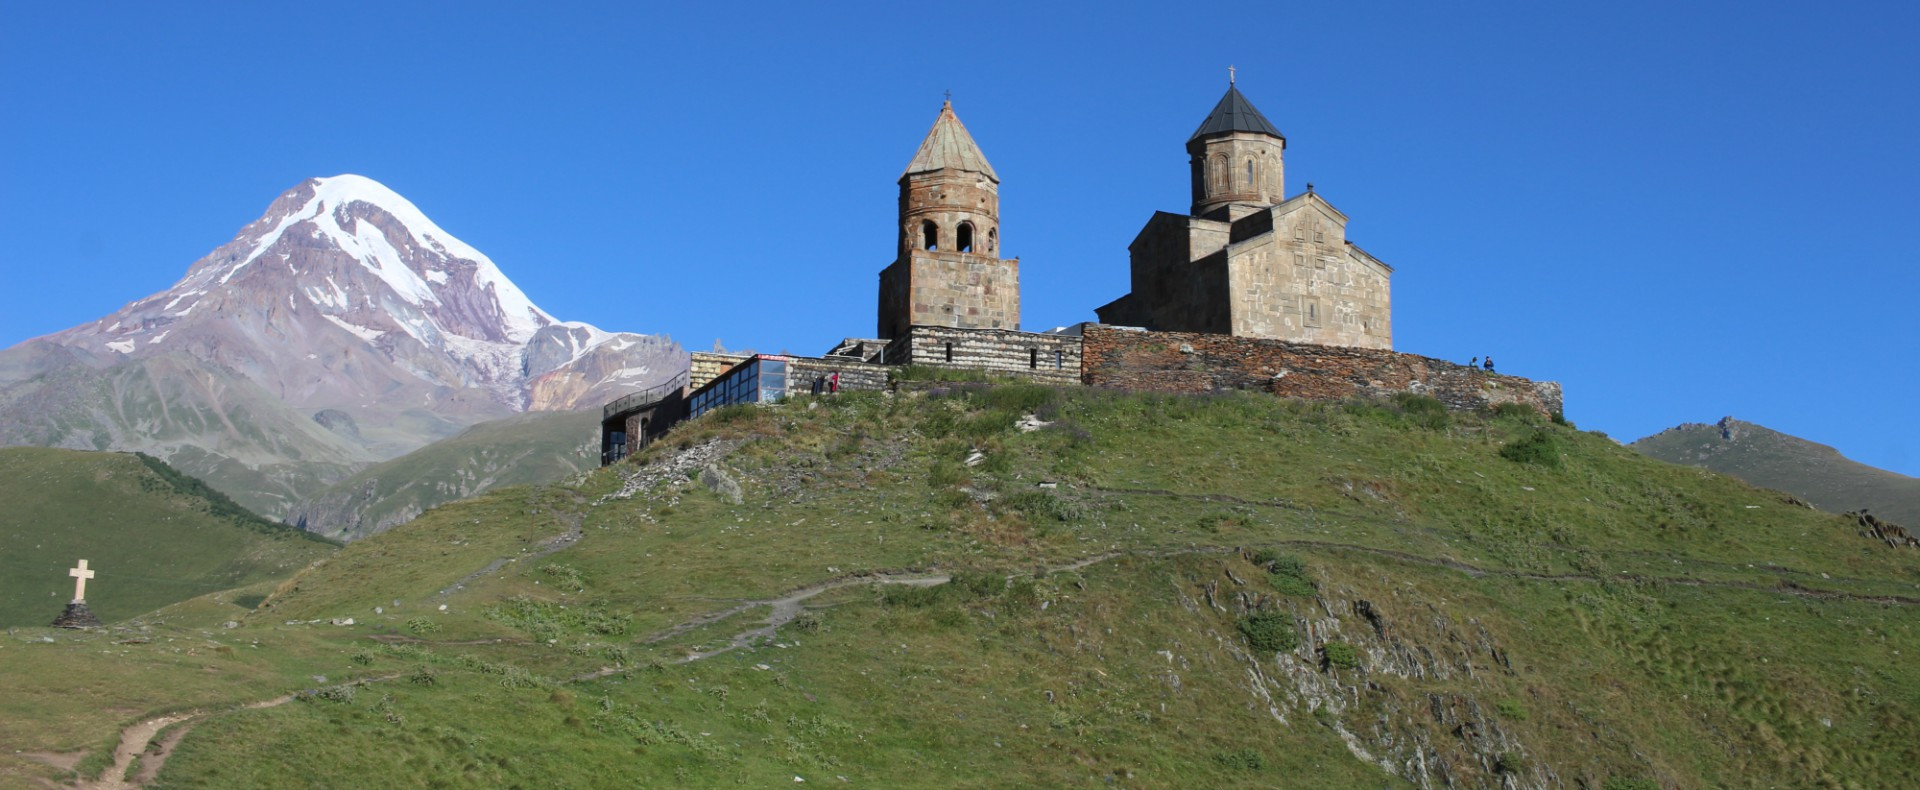 Gergeti Trinity Church, Kazbeg